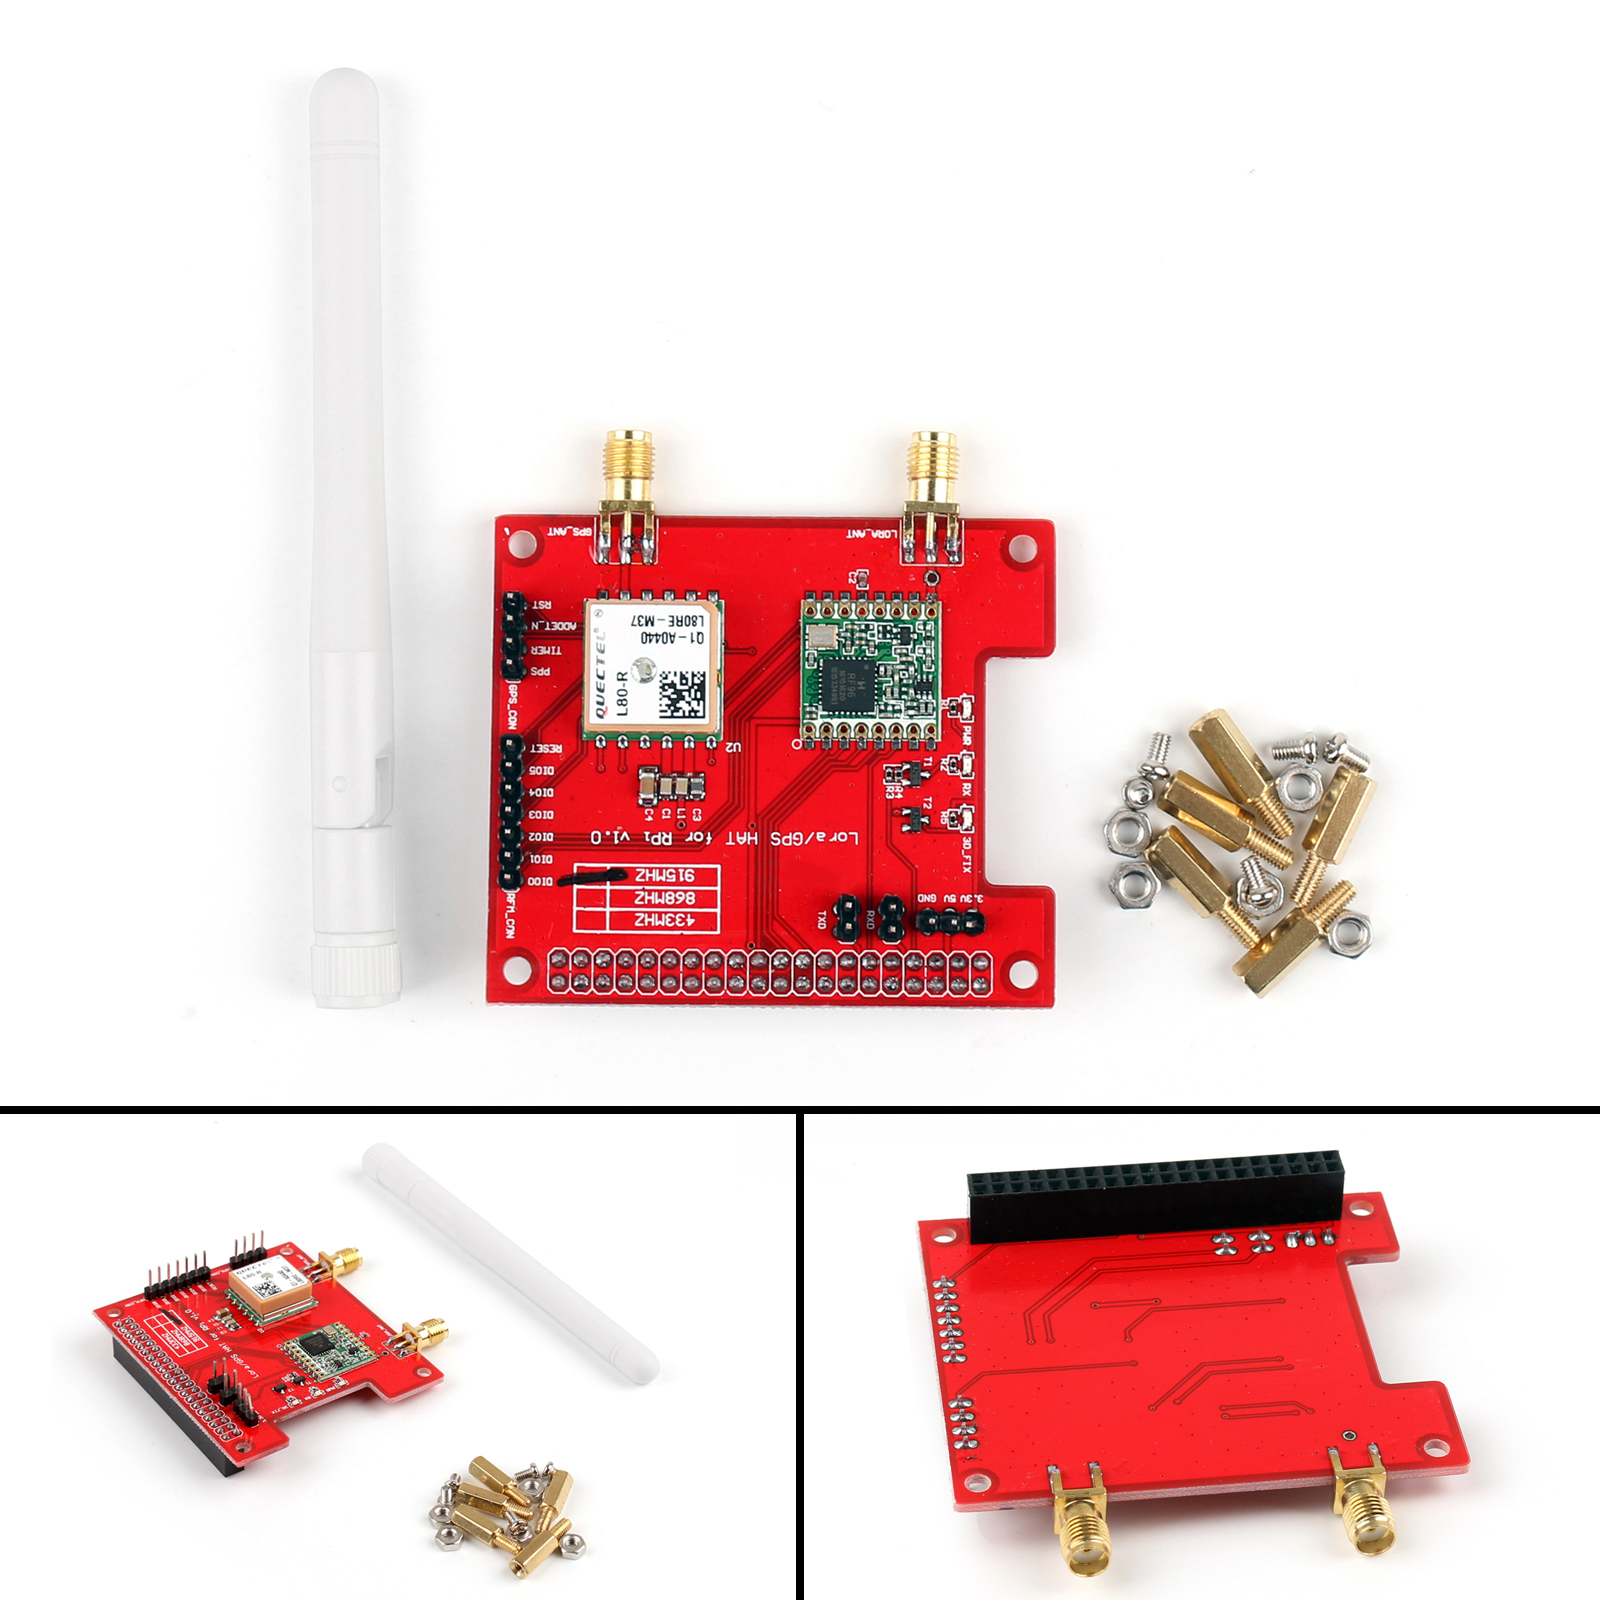 Details about Long Distance Wireless 433/868/915 Mhz Lora/GPS Expansion For  Raspberry Pi UE